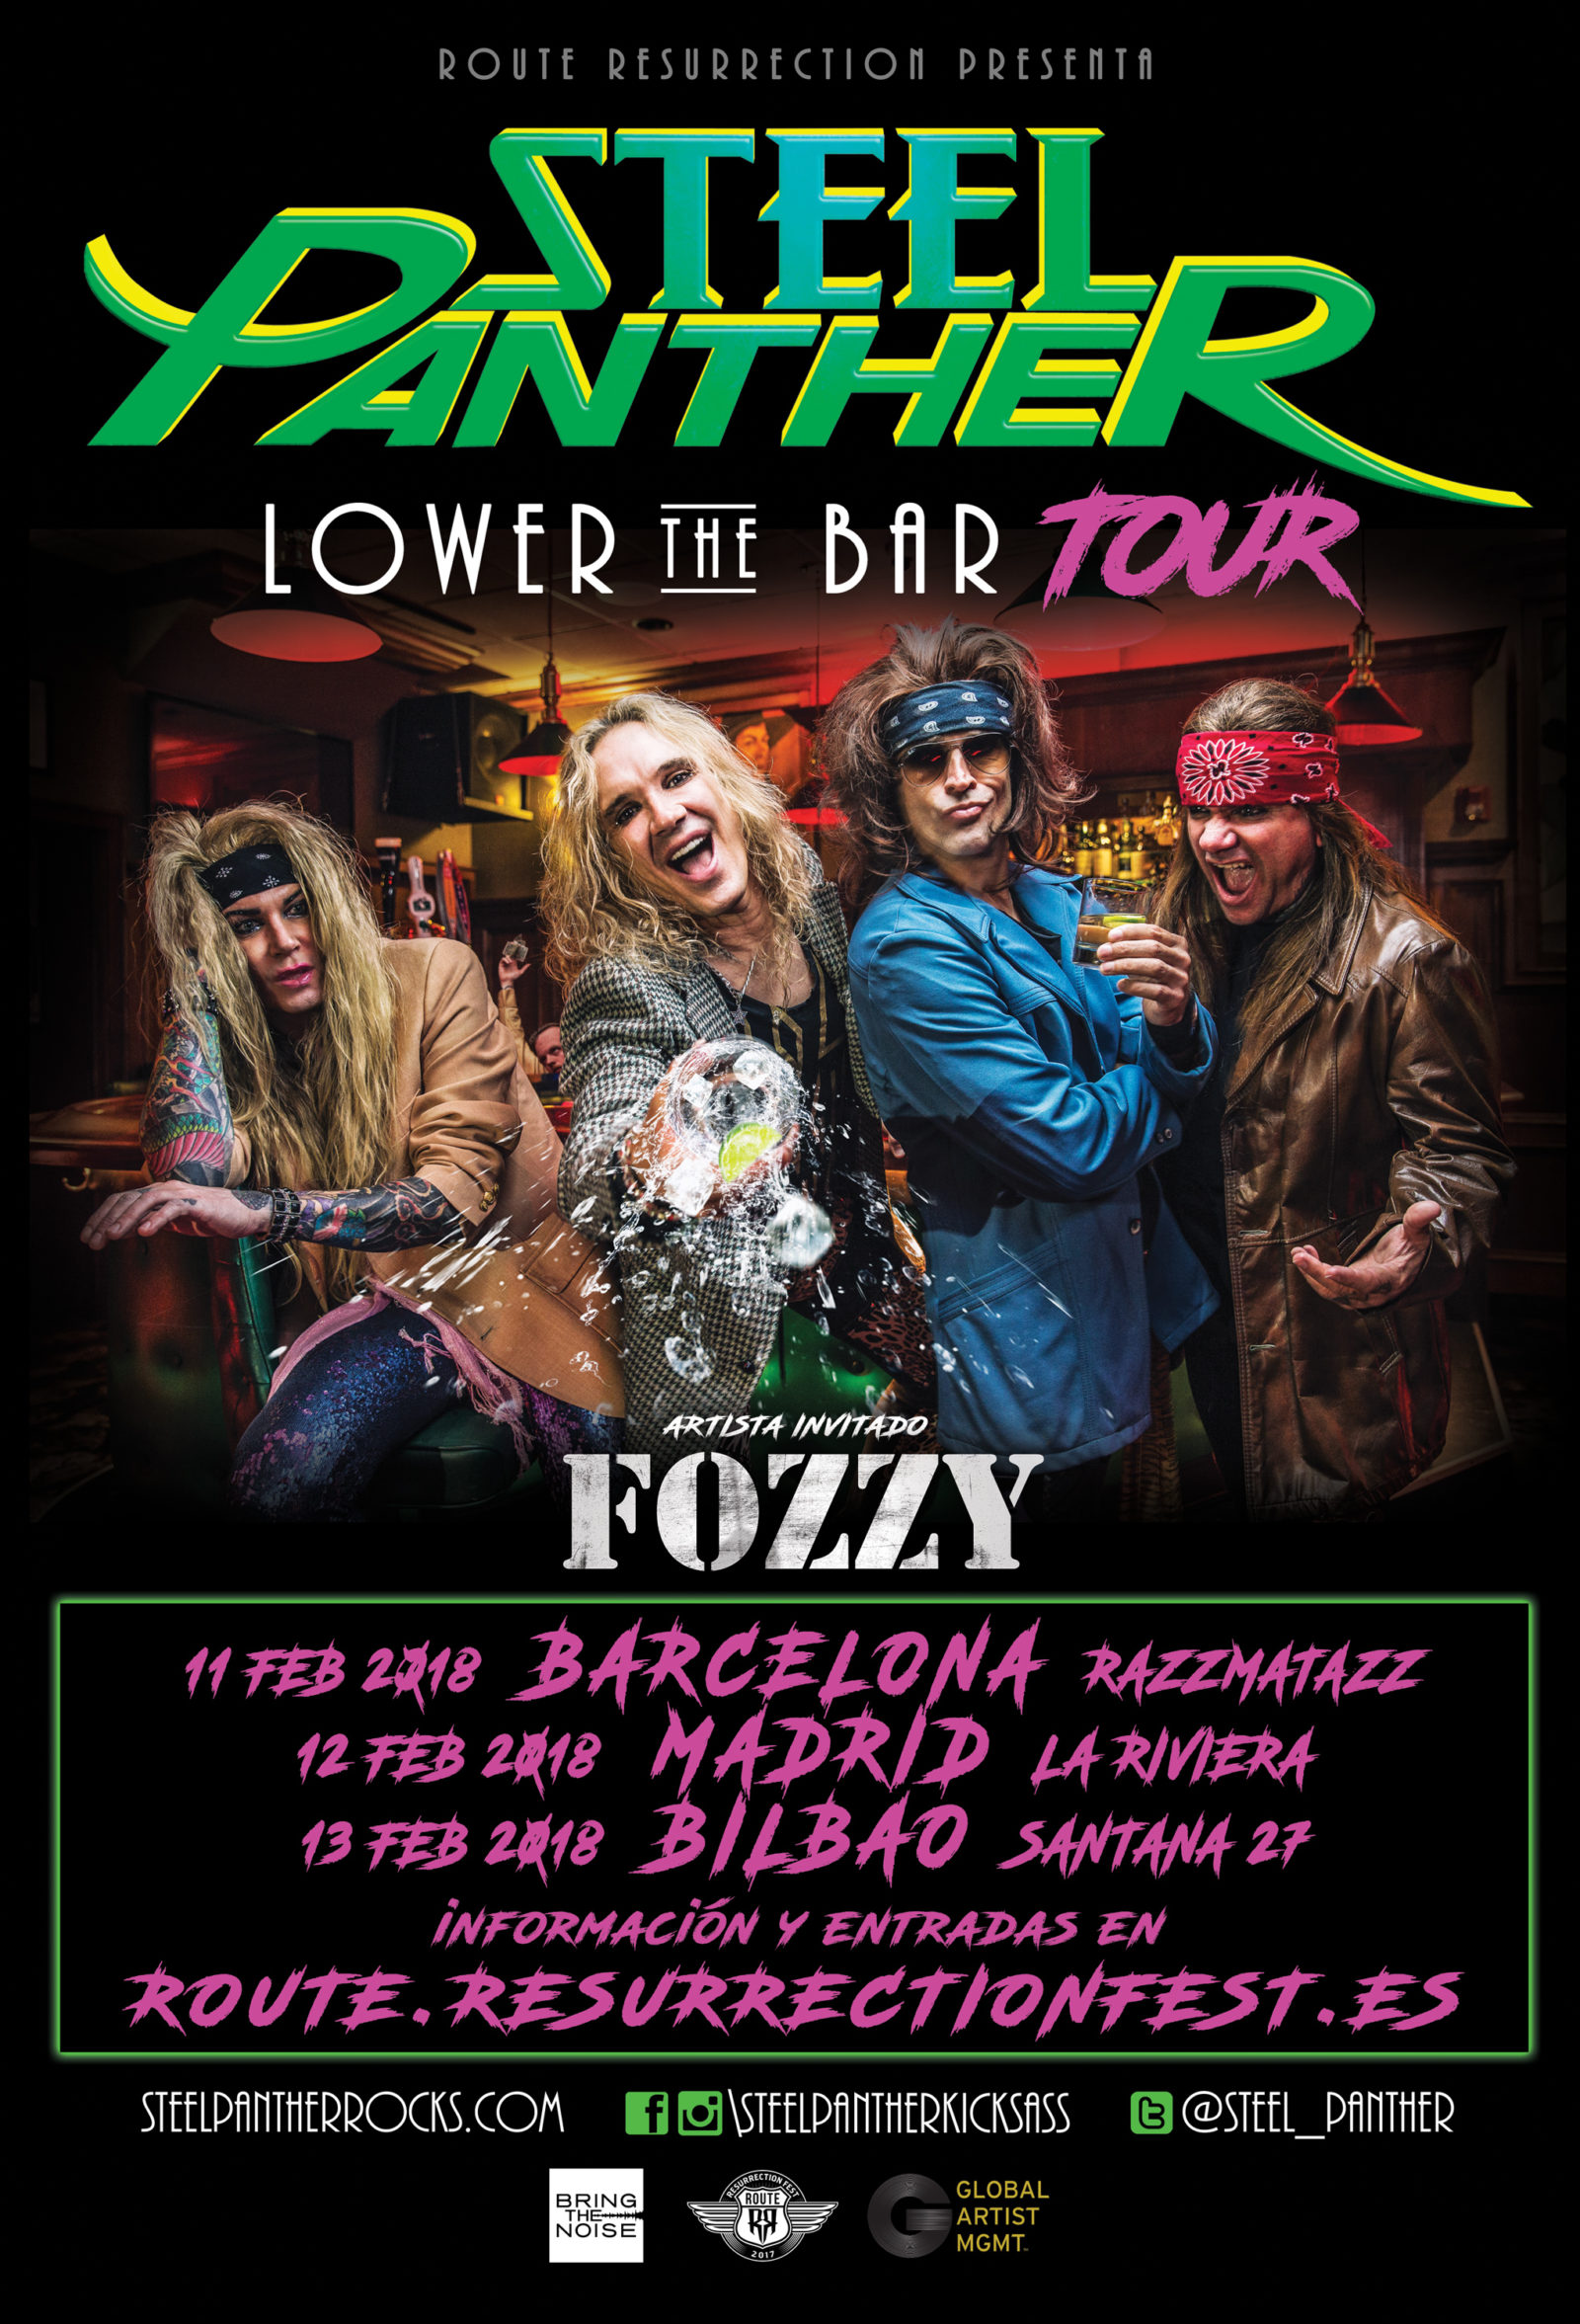 STEEL PANTHER, CACHONDEO METAL - Página 6 Route-Resurrection-2018-Steel-Panther-and-Fozzy-Poster-1600x2353